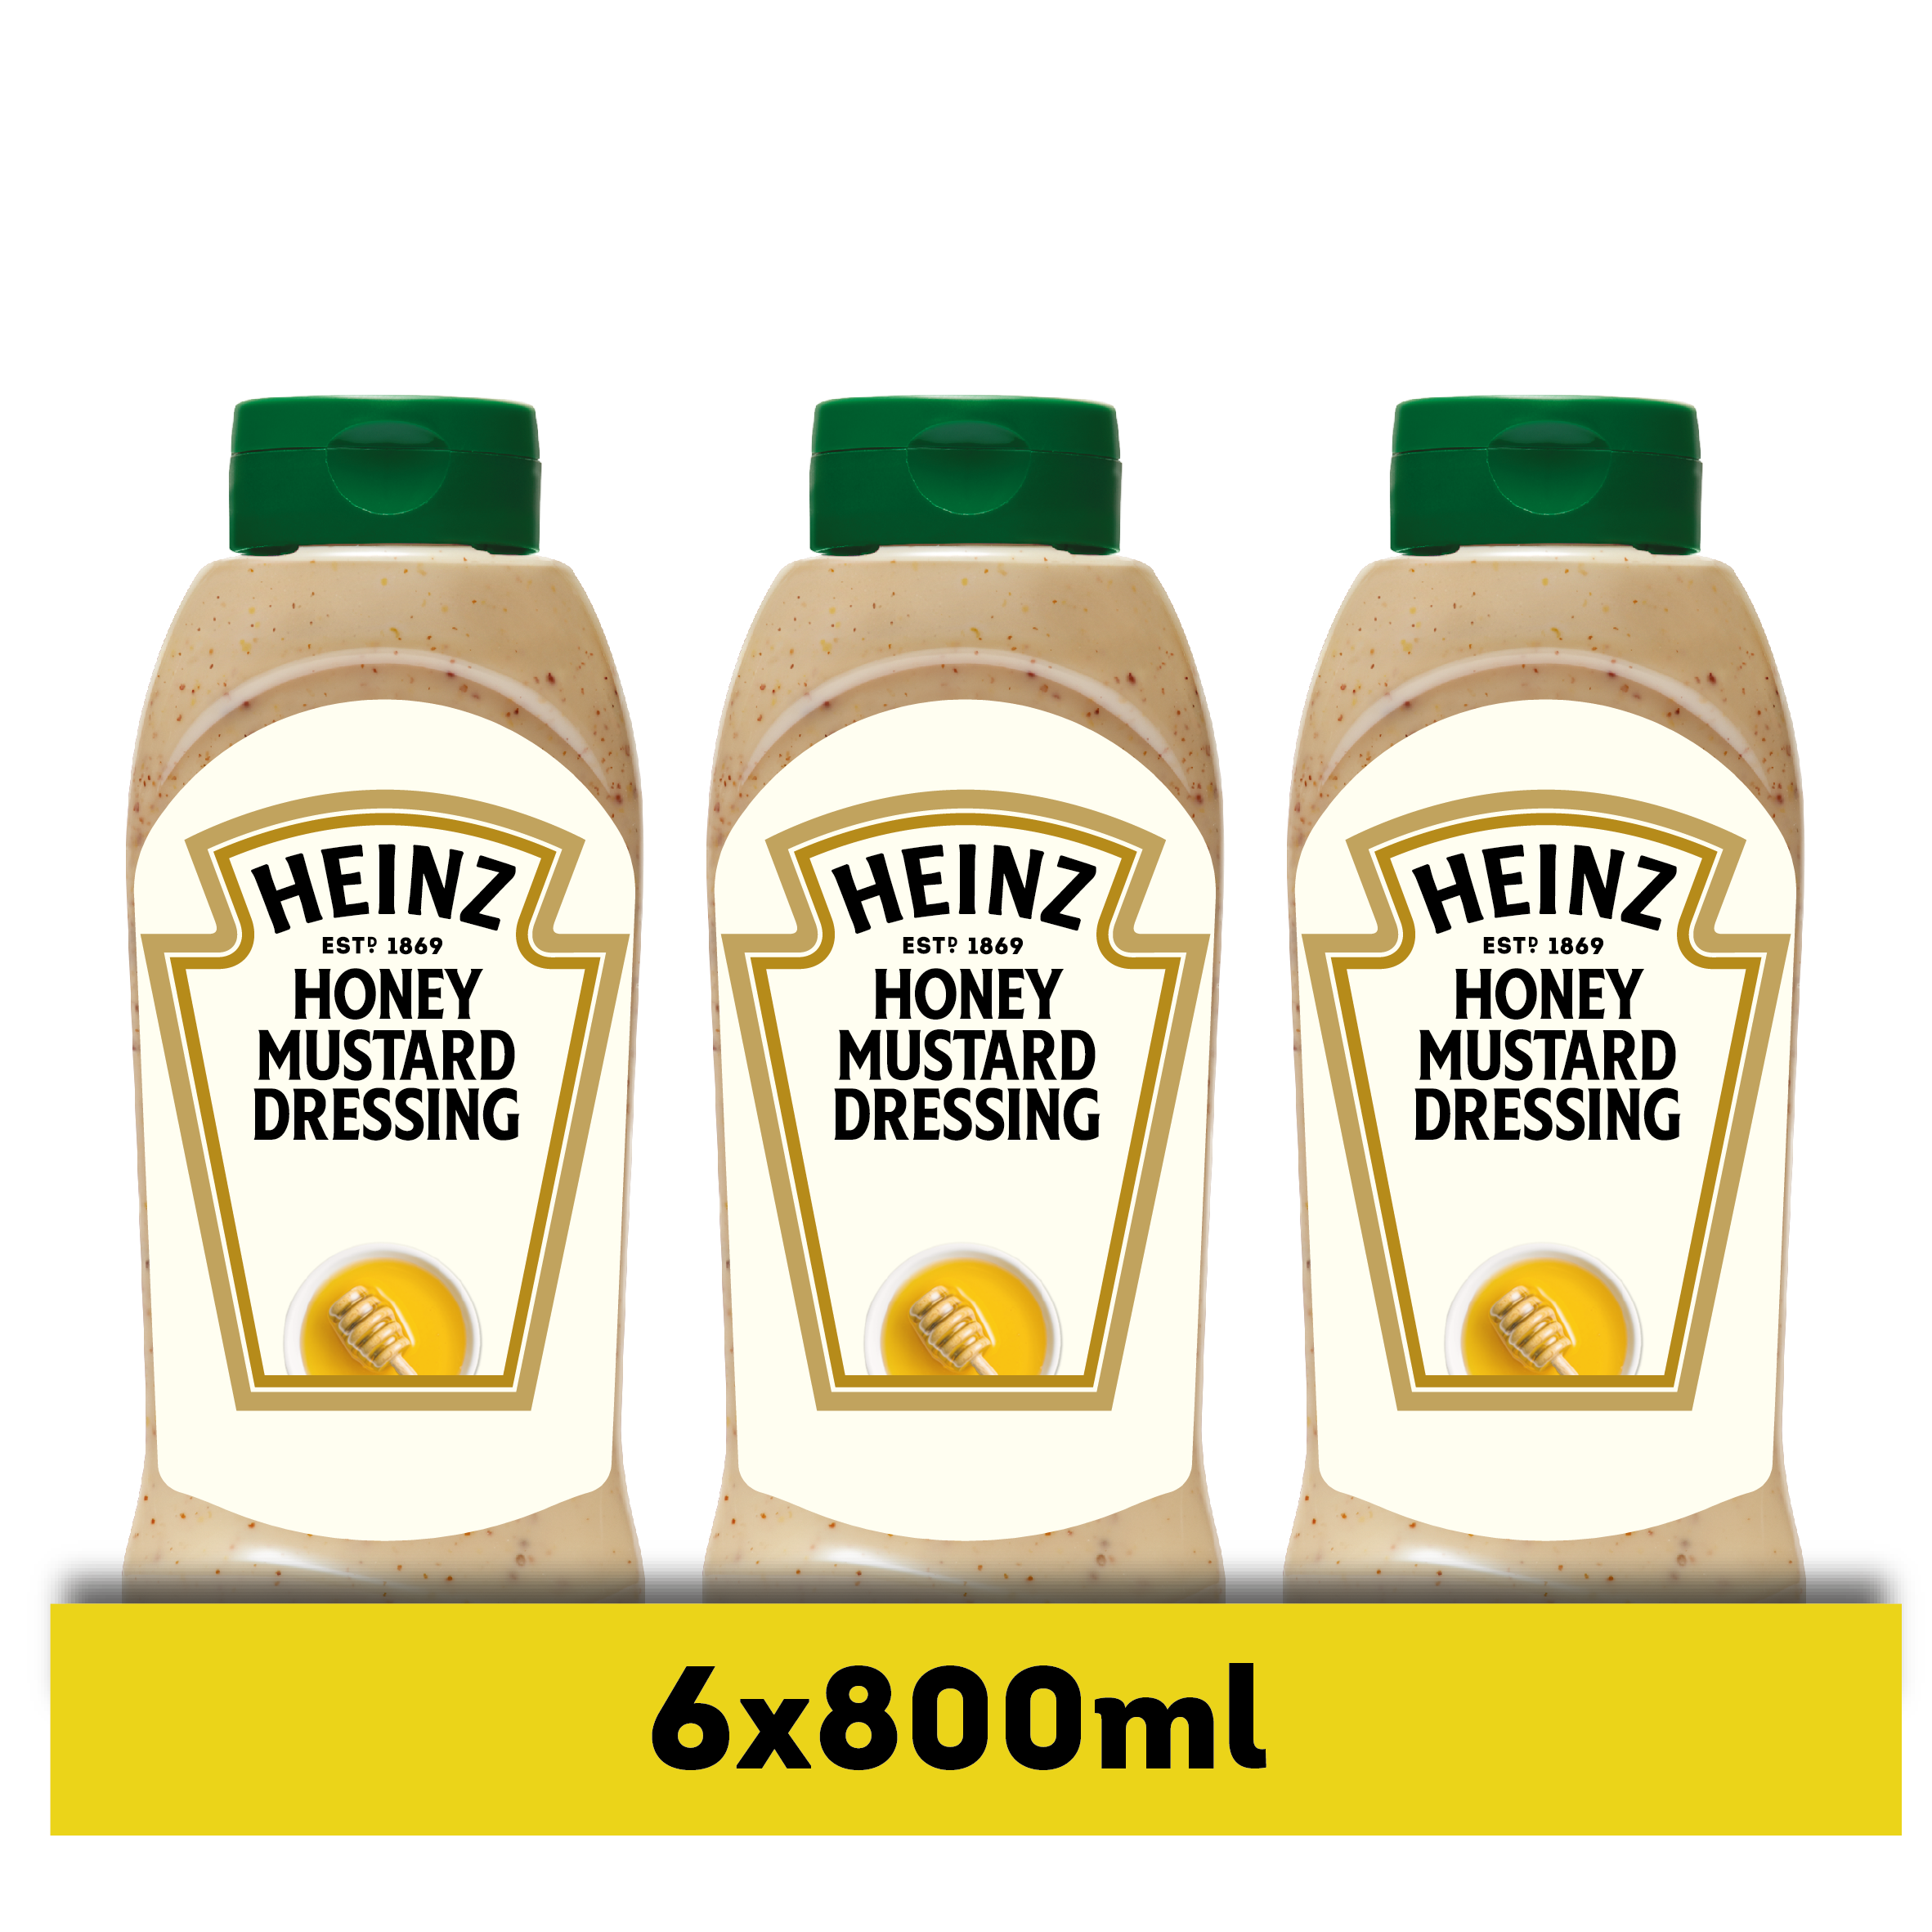 Heinz honey mustard800ml